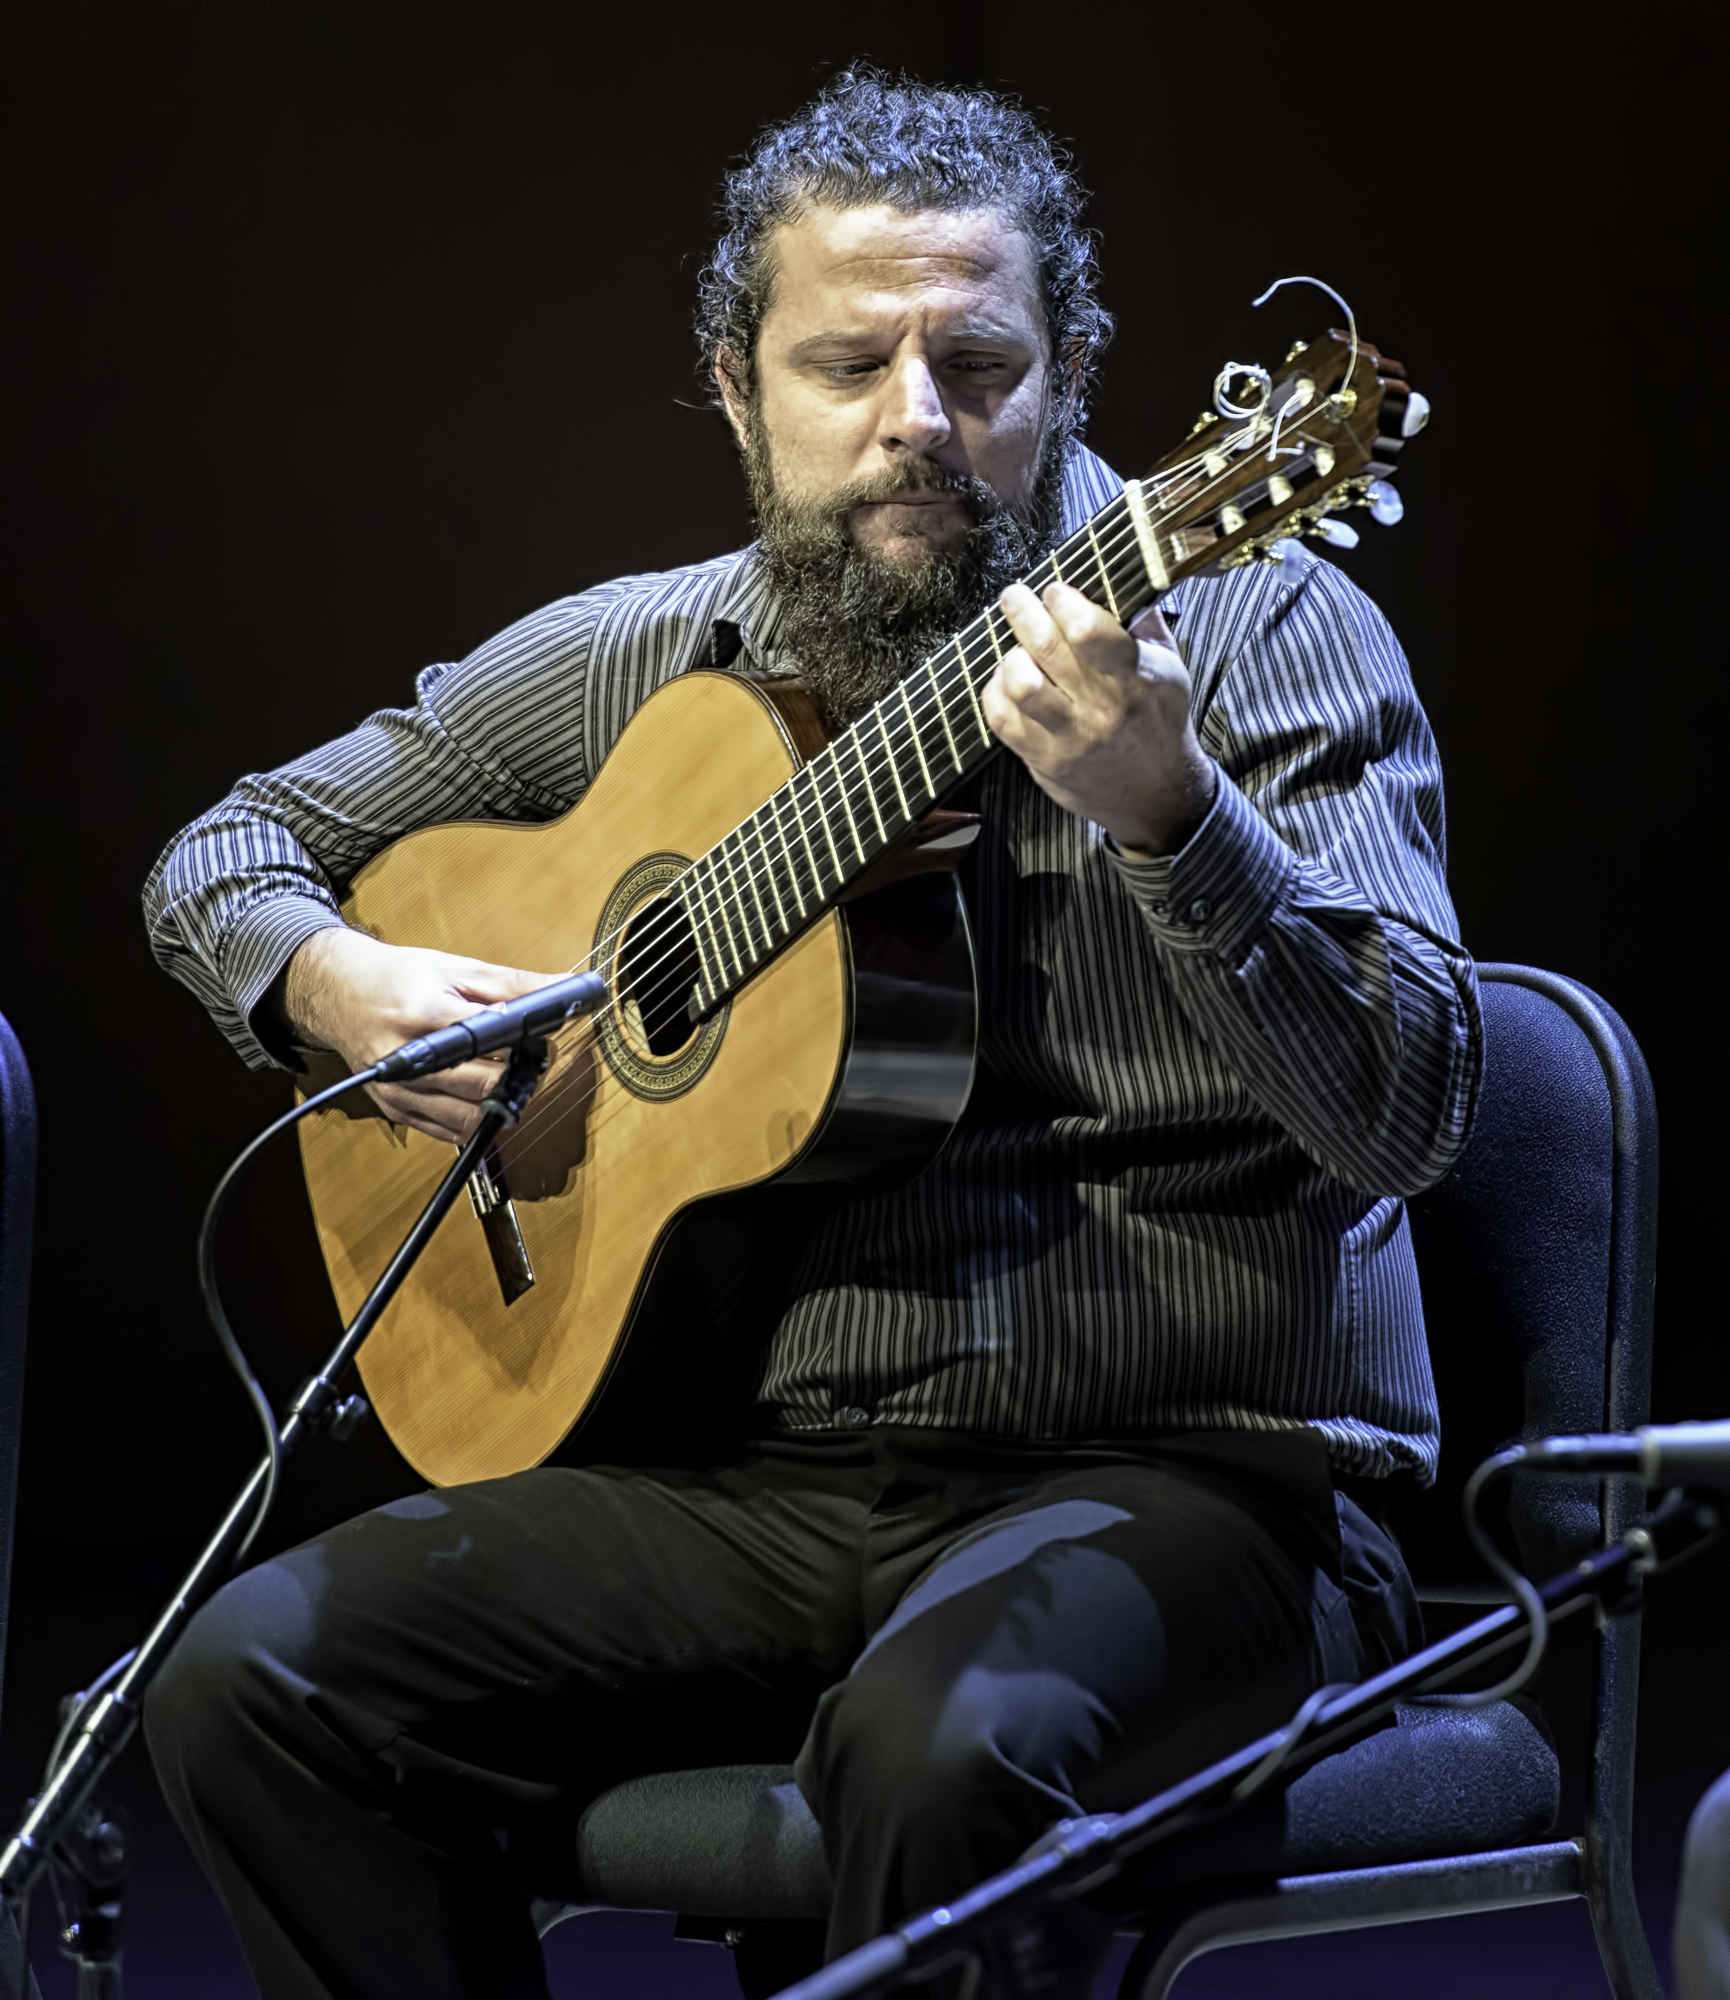 Douglas Lora With Anat Cohen And Trio Brasileiro At The Musical Instrument Museum (mim) In Phoenix